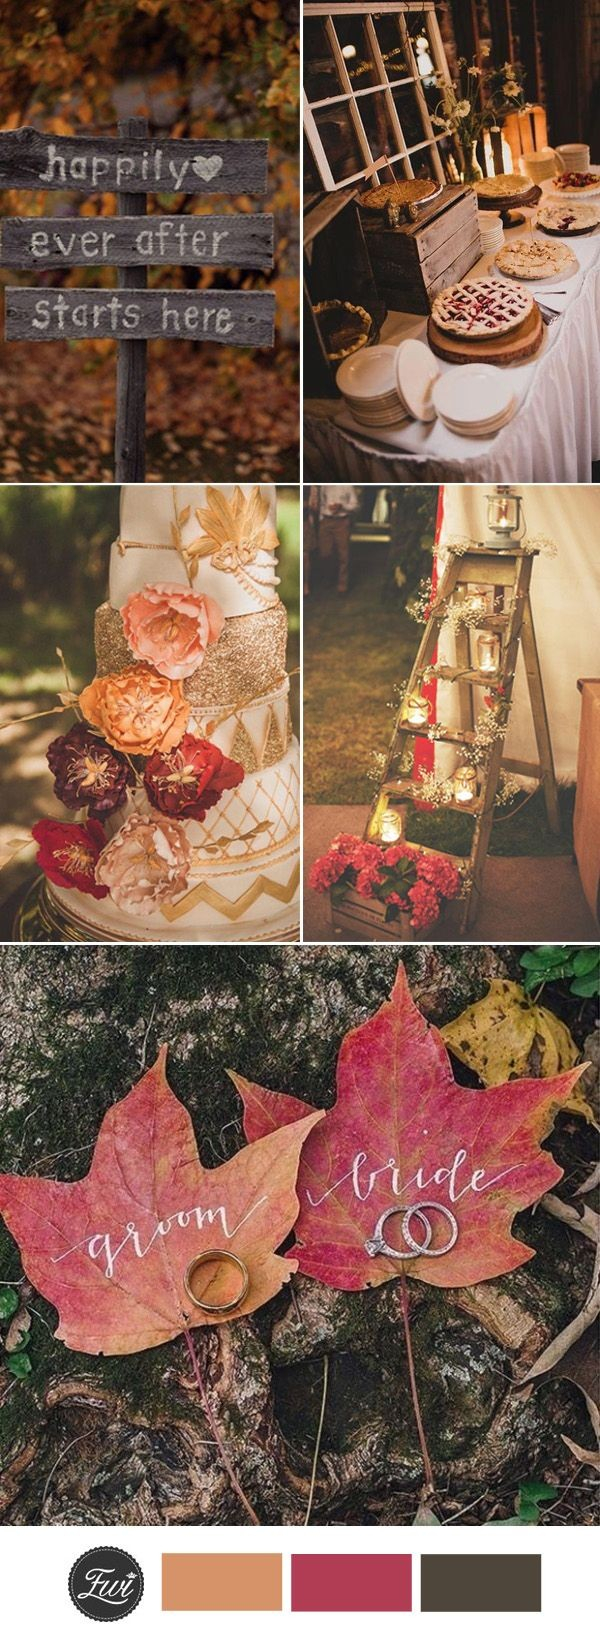 Wedding Decorations For Fall Impressive Fall Wedding Decorations Cheap Favor Ideas Diy Tagged